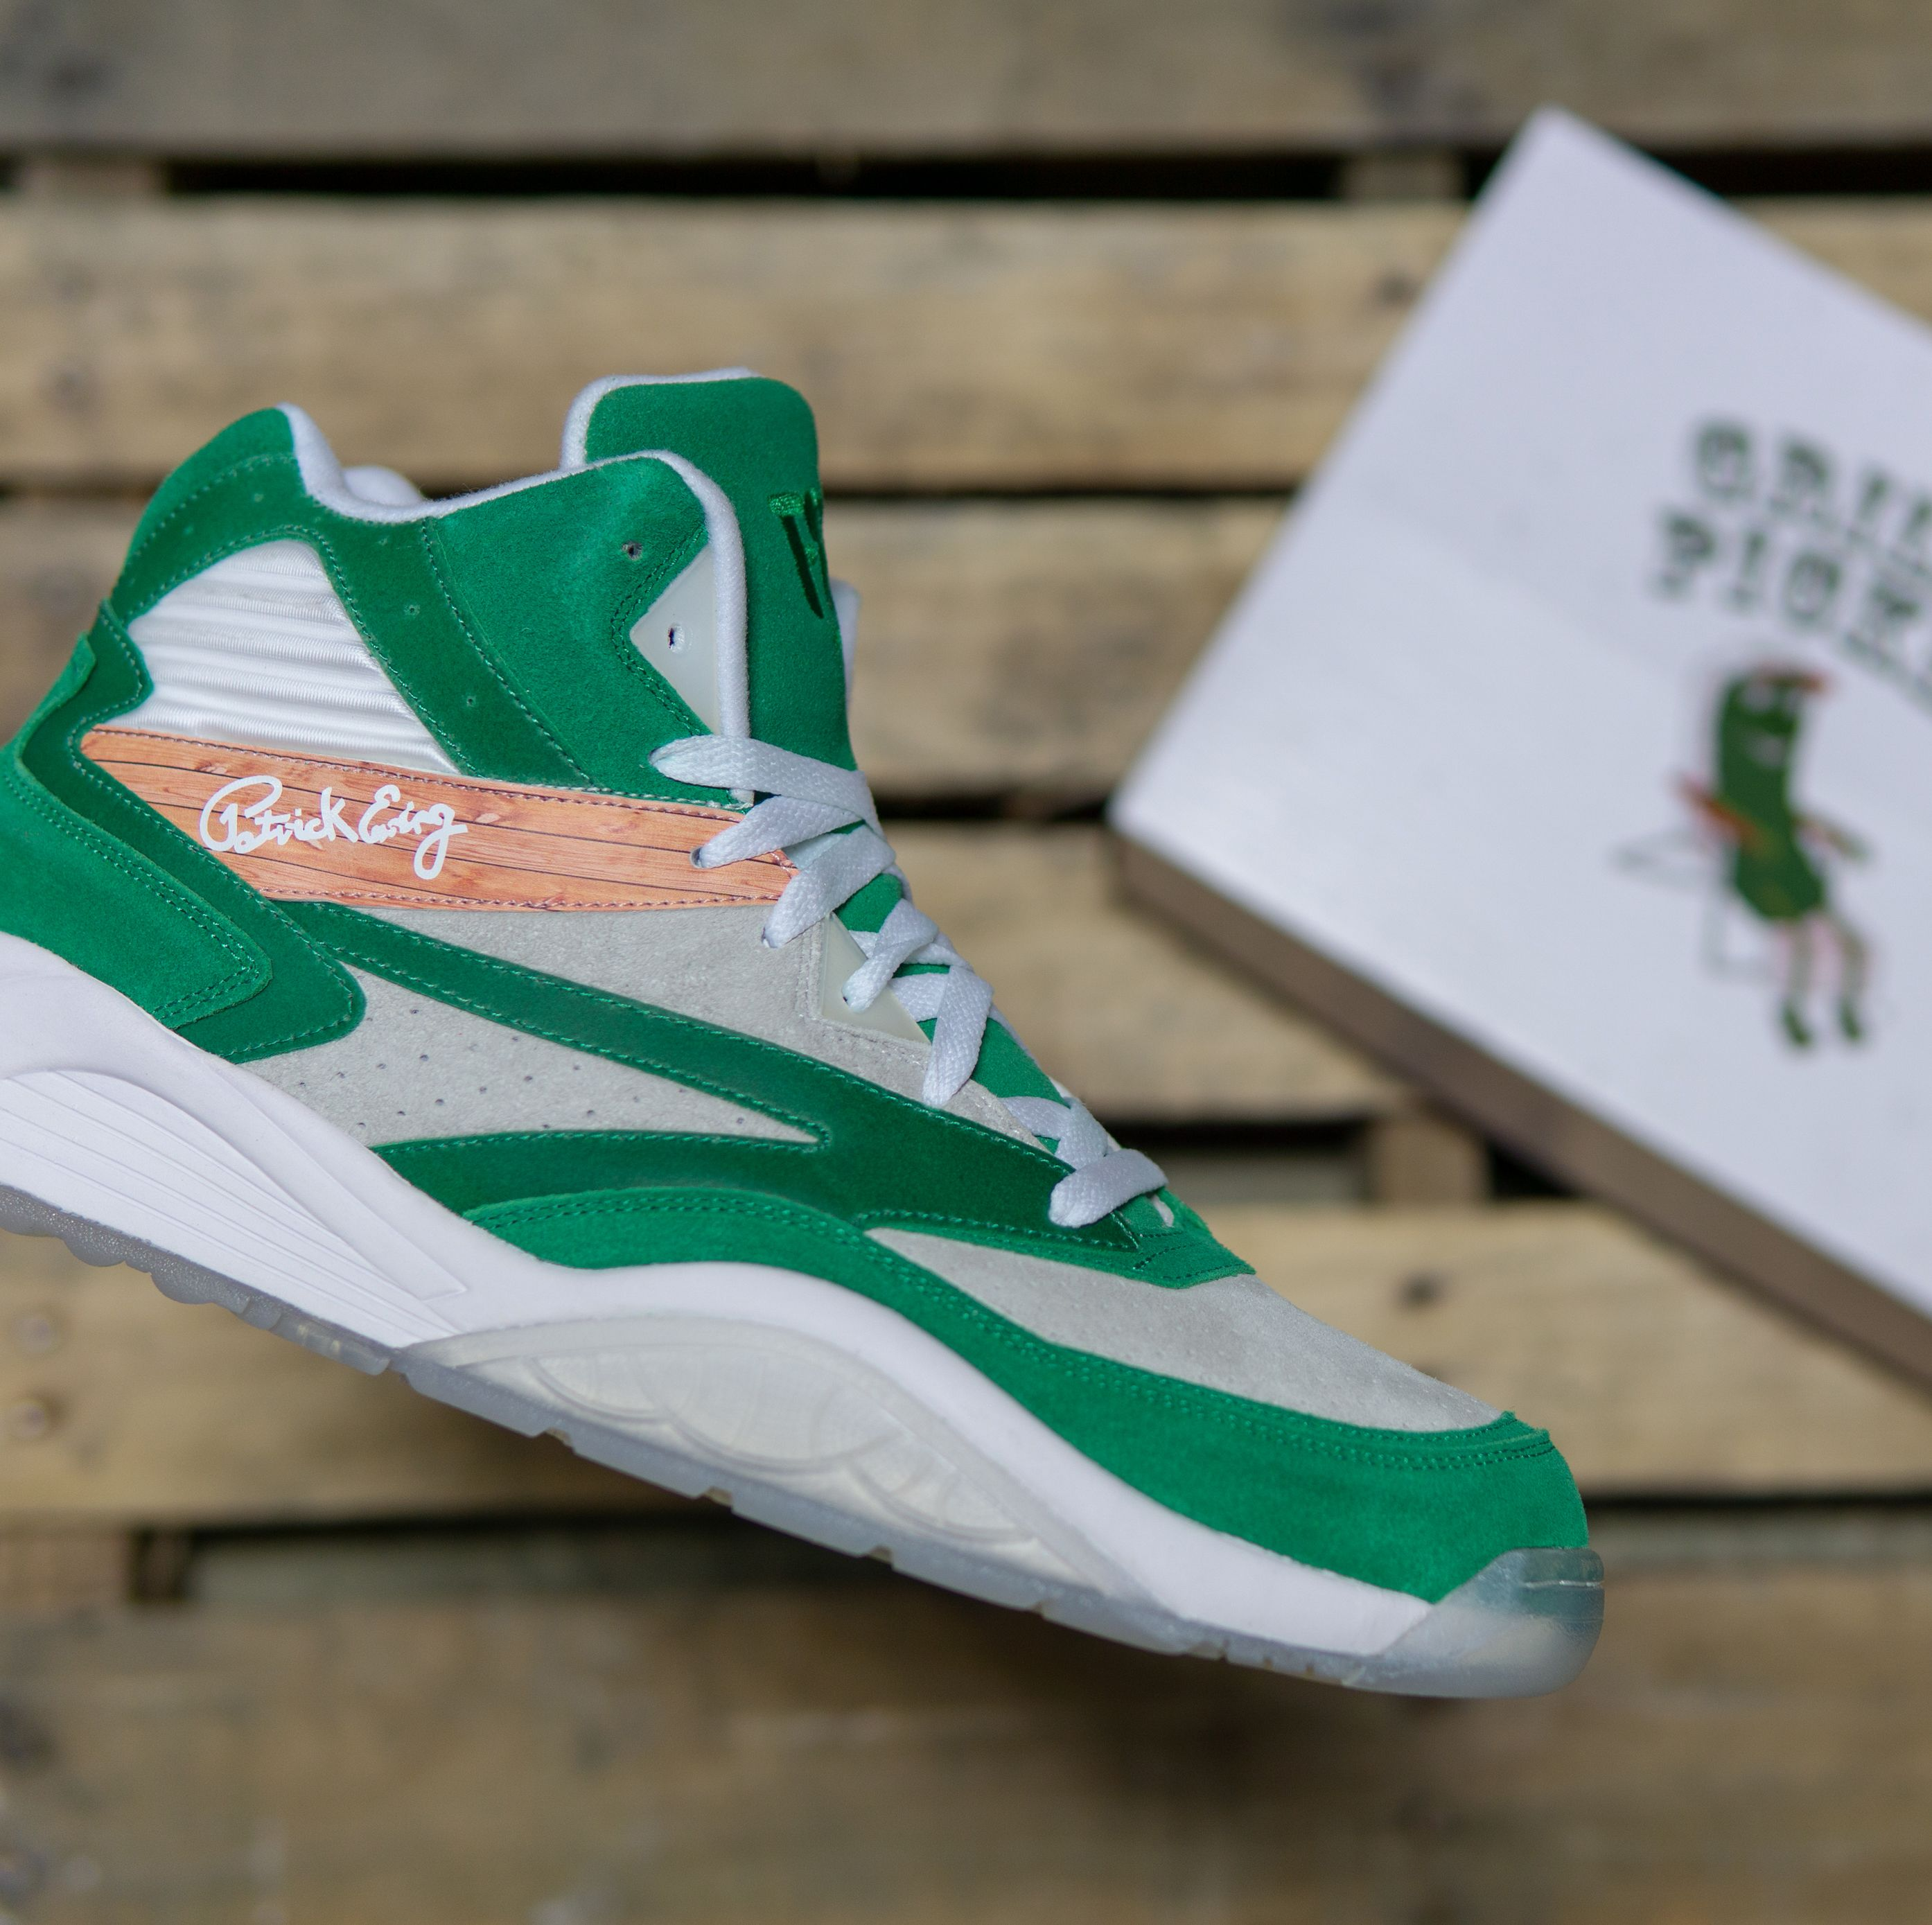 Patrick Ewing Made a Pickle Sneaker and I'm Salty I Don't Own a Pair